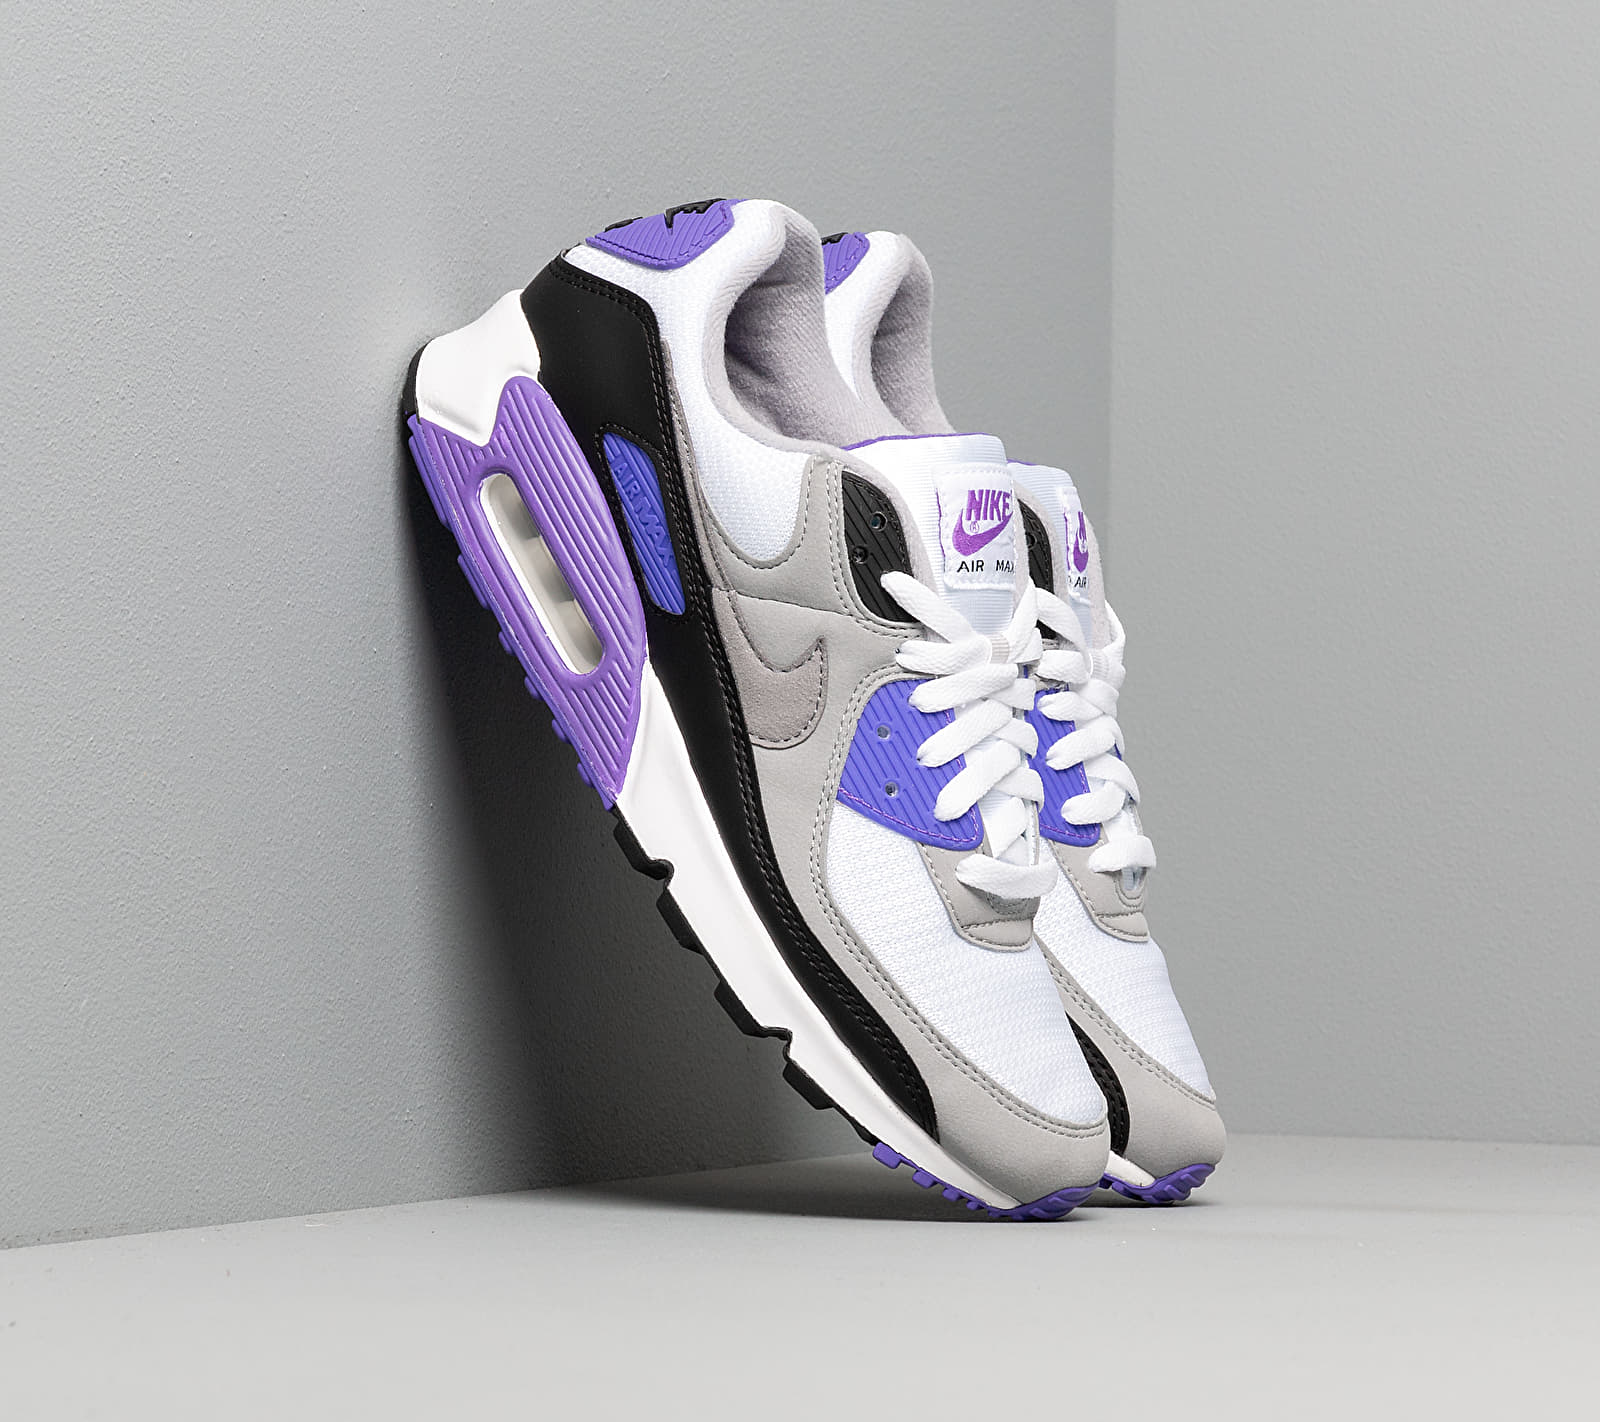 Nike Air Max 90 White/ Particle Grey-Hyper Grape-Black EUR 38.5